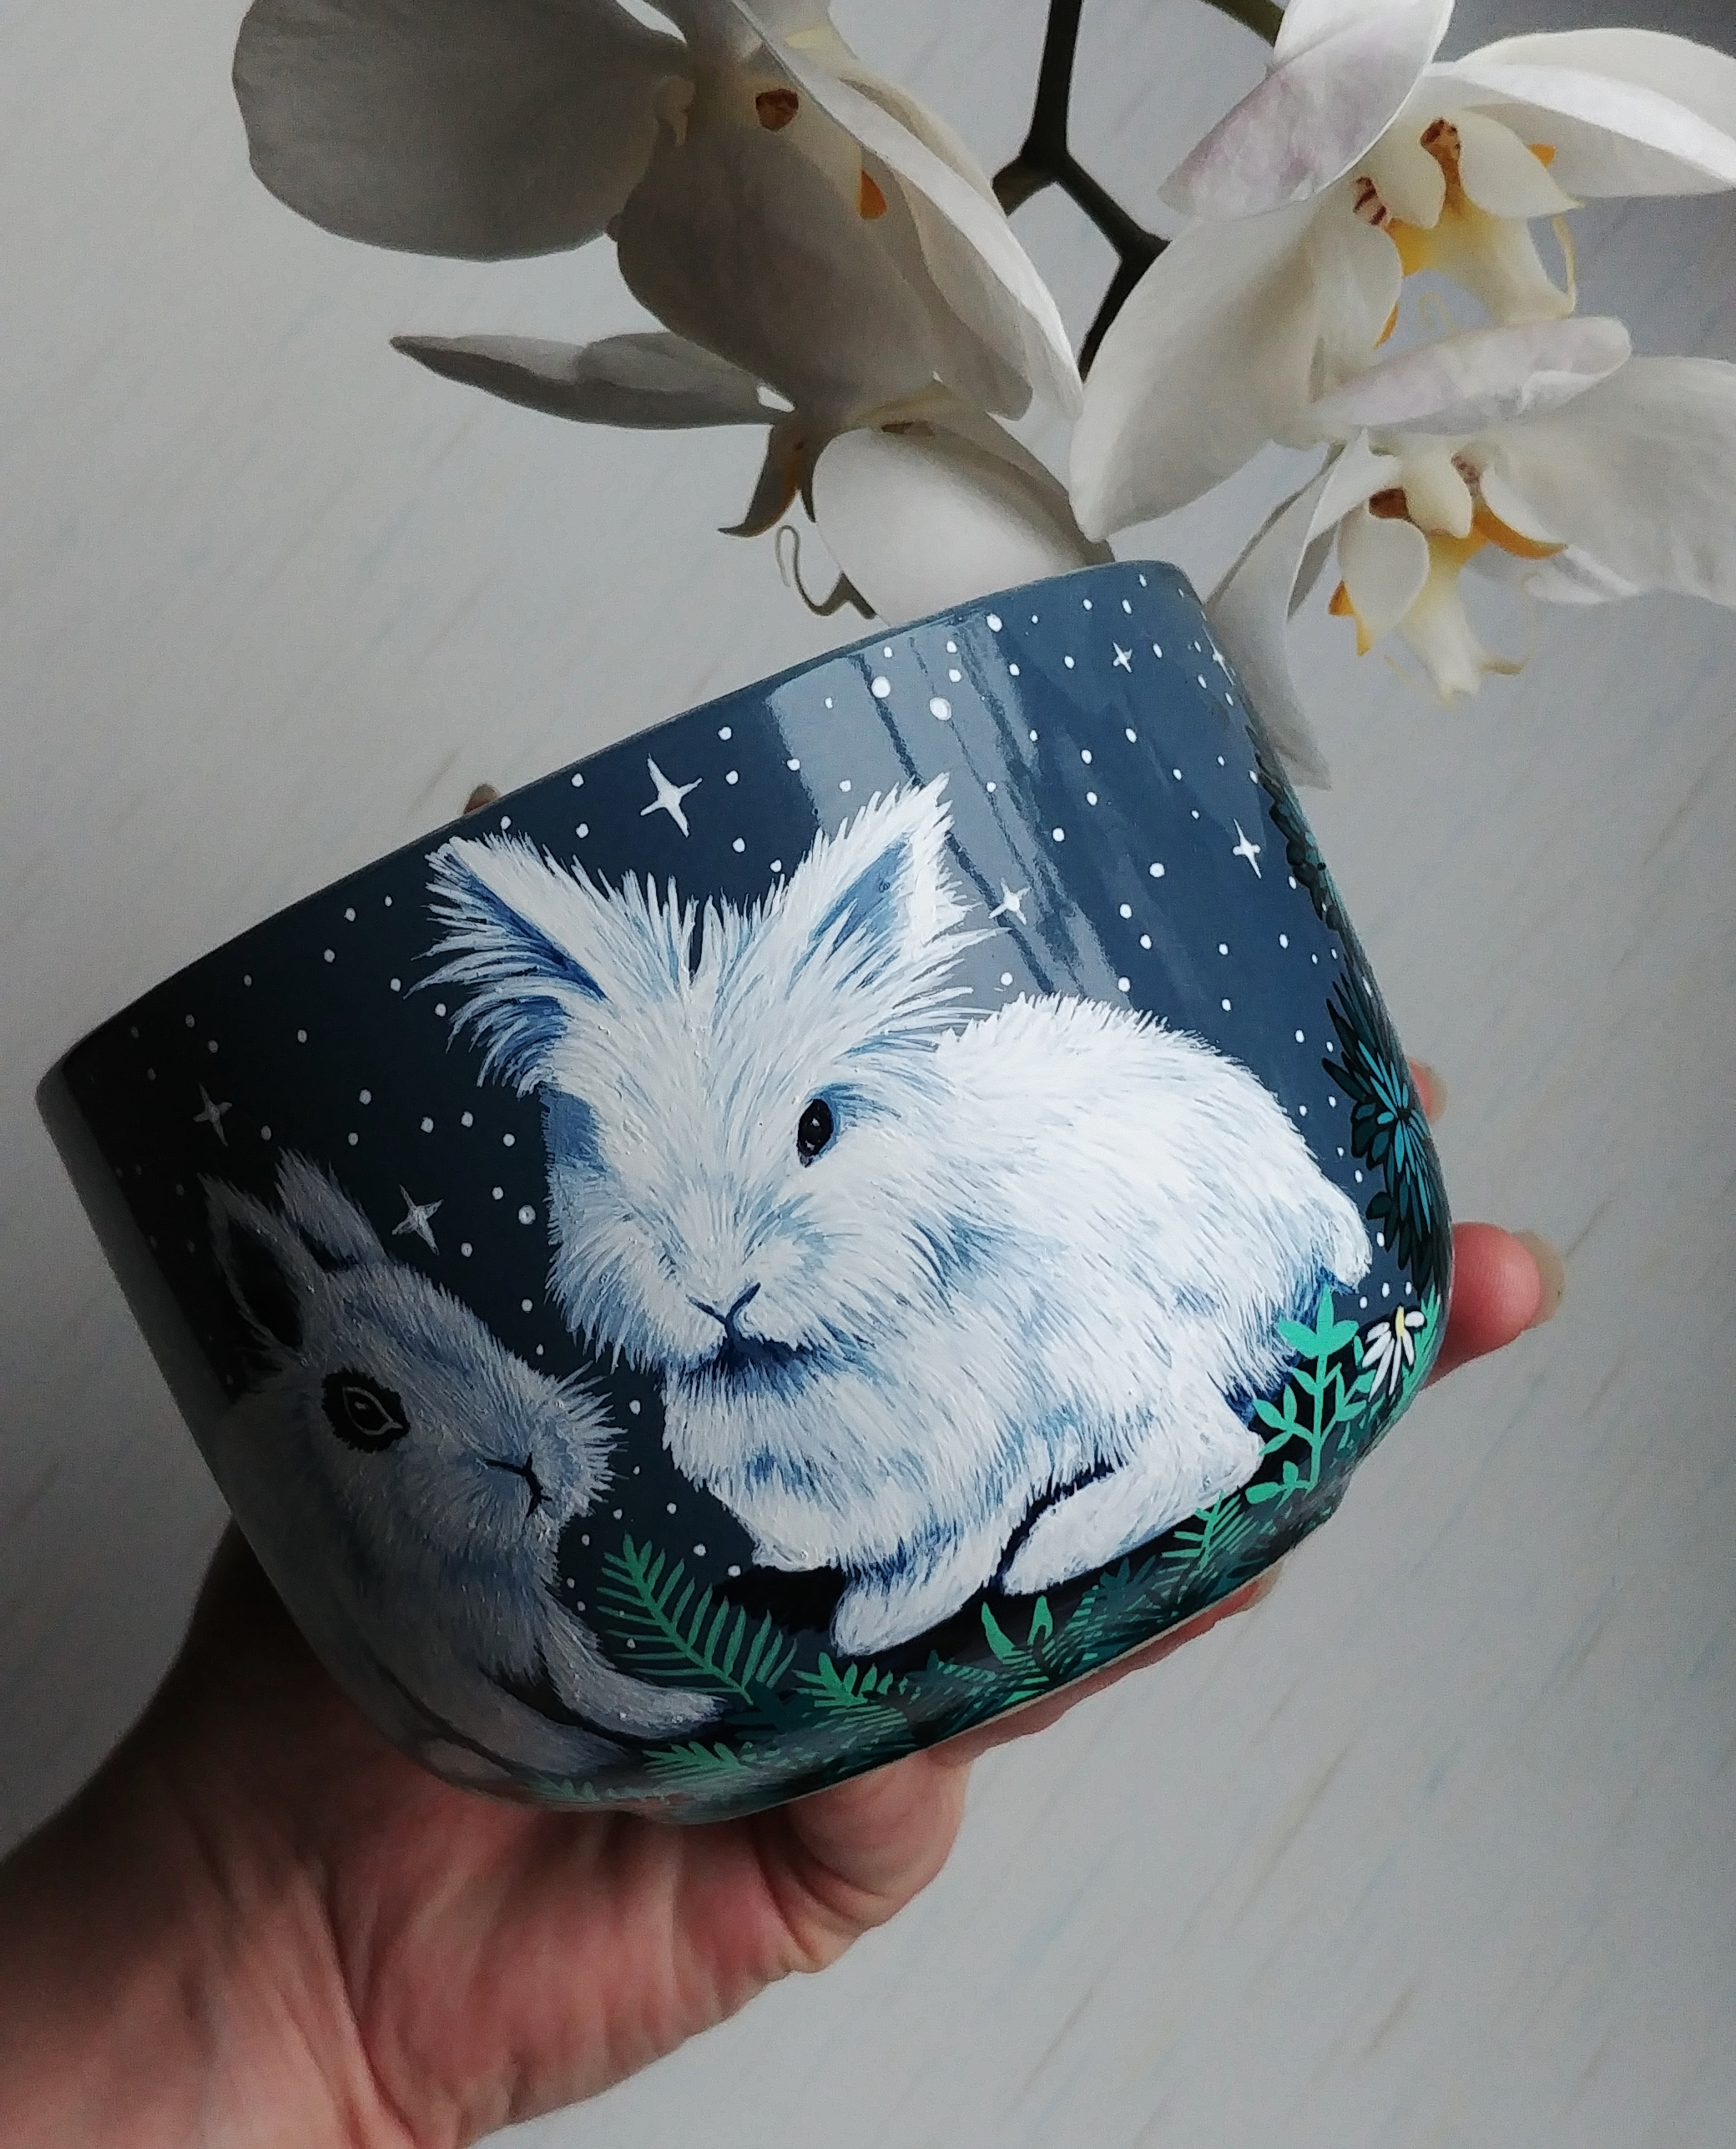 bunny etsy mug art work, hand painted illustratin, etsy seller, bunny drawing, hare, rabbit artwork, ceramics mug, tea coffee cup soup cup 4